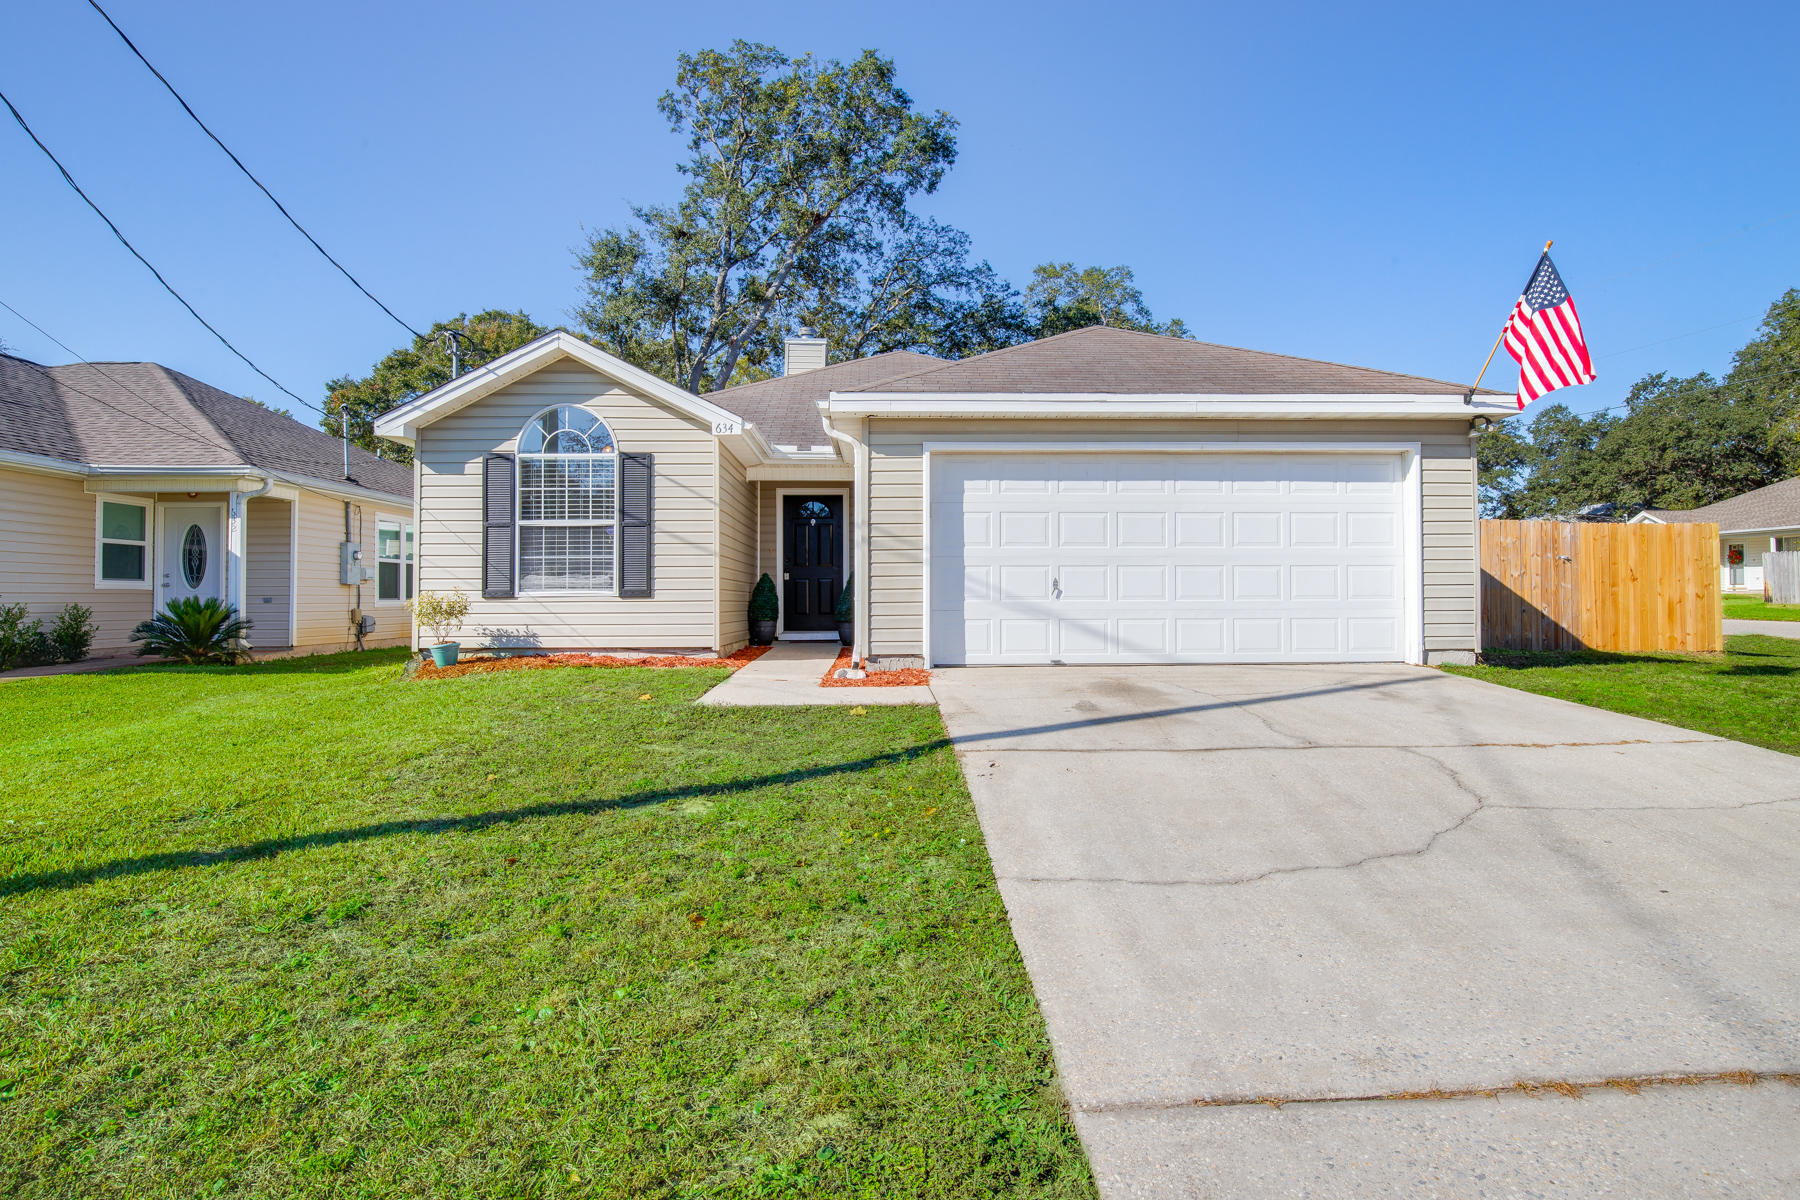 Photo of home for sale at 634 Jerrells, Fort Walton Beach FL